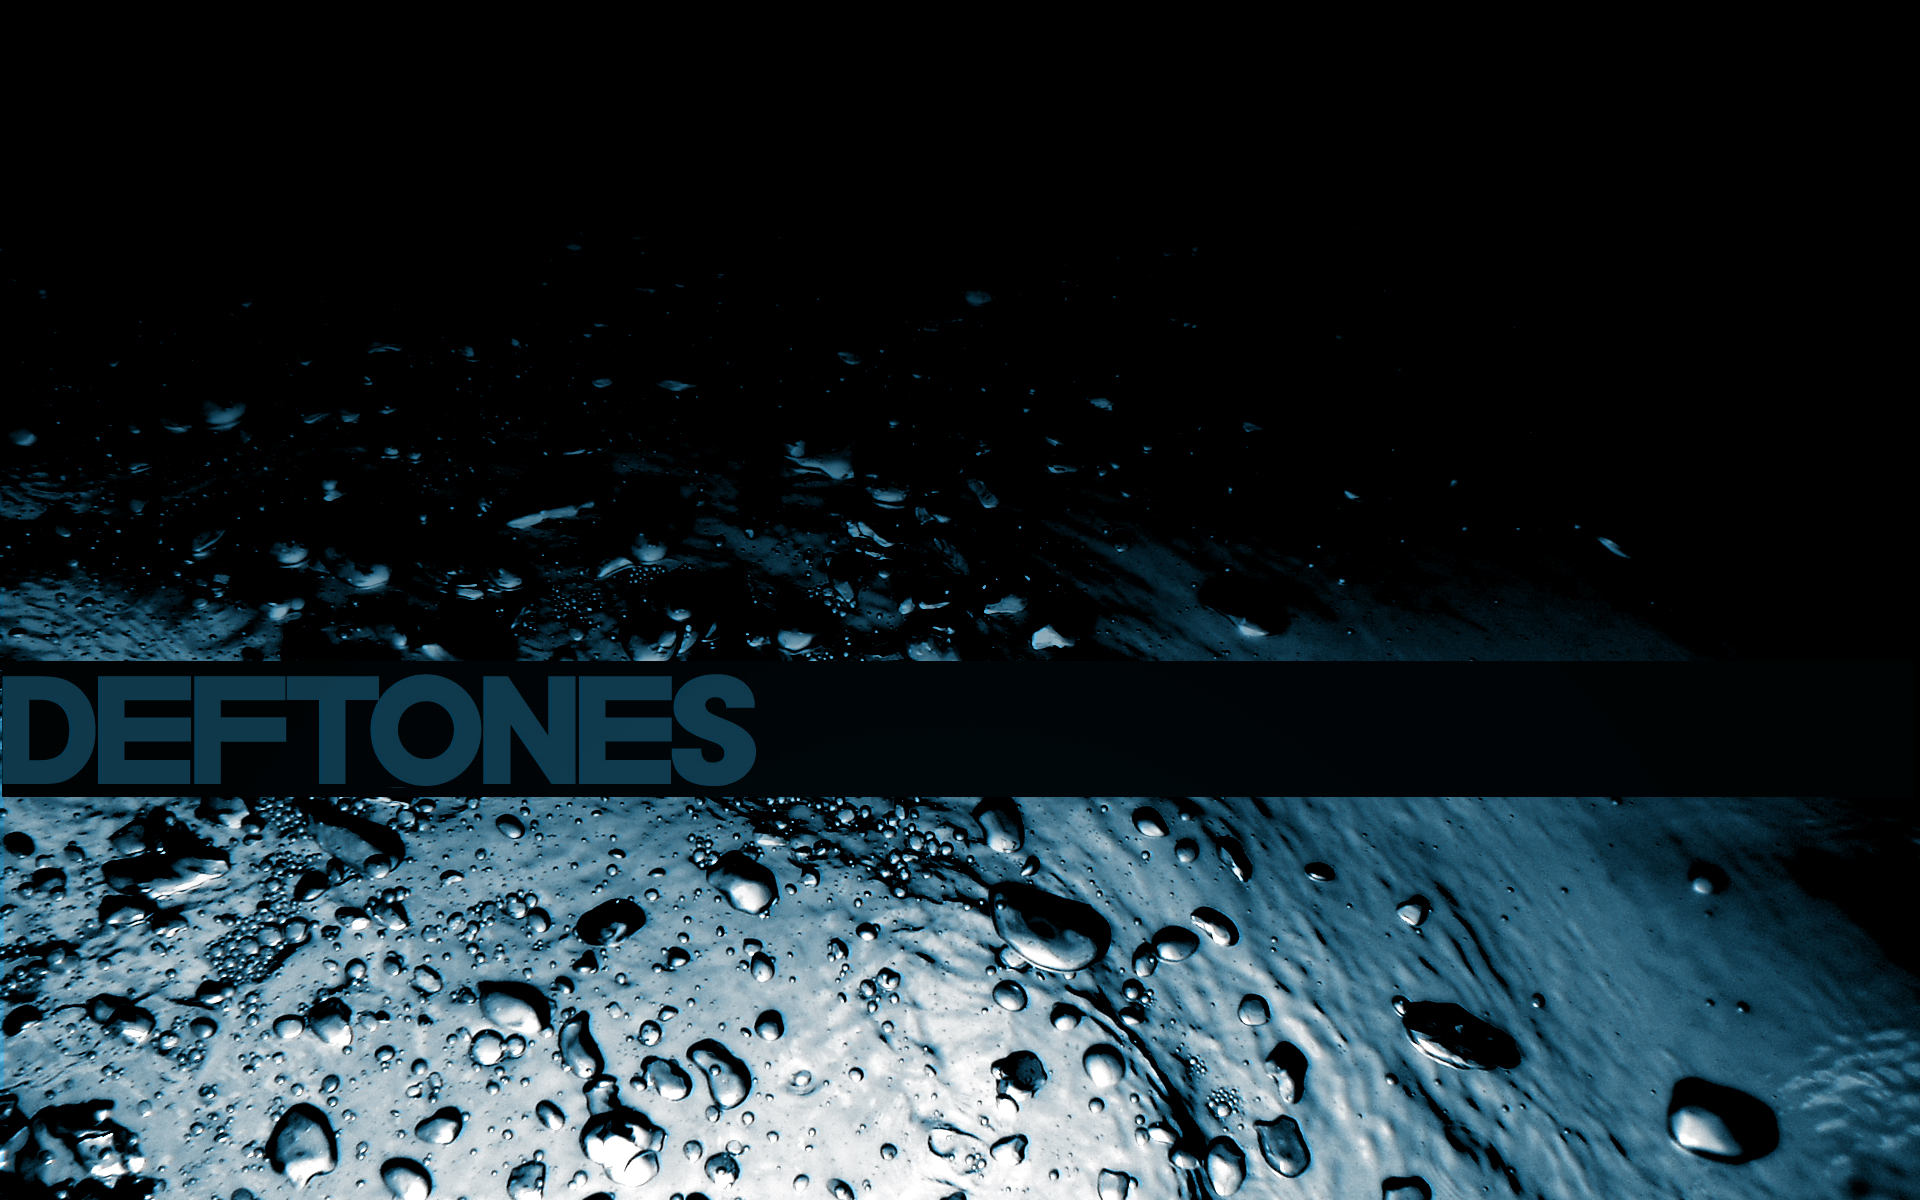 Deftones wallpaper by aedelwulf on deviantart - Wallpaper pictures ...